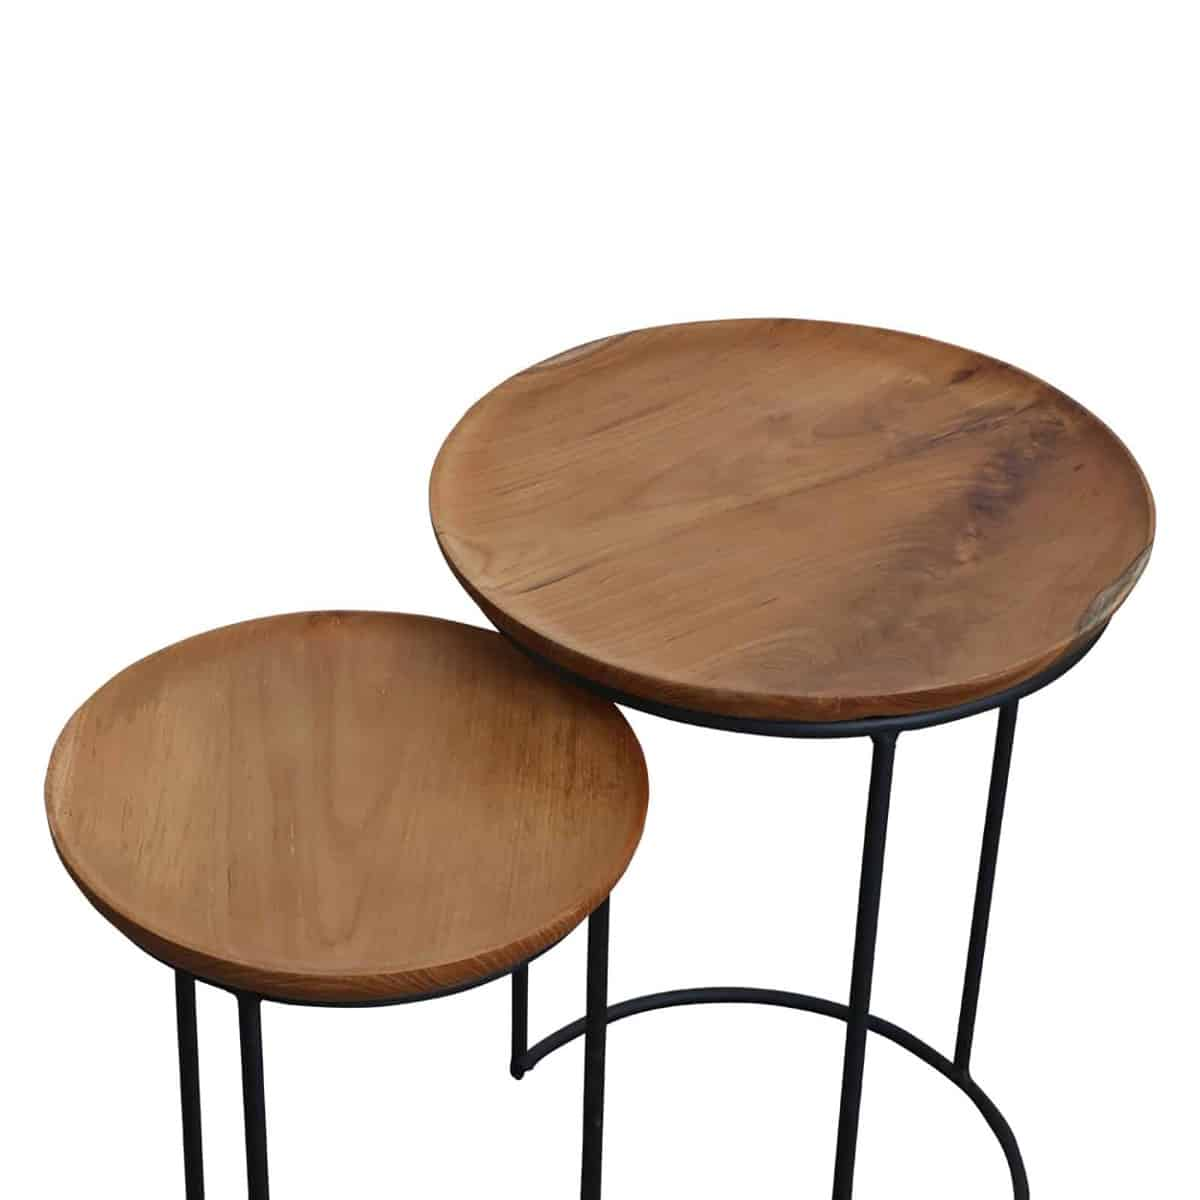 Double nesting wooden side tables separated